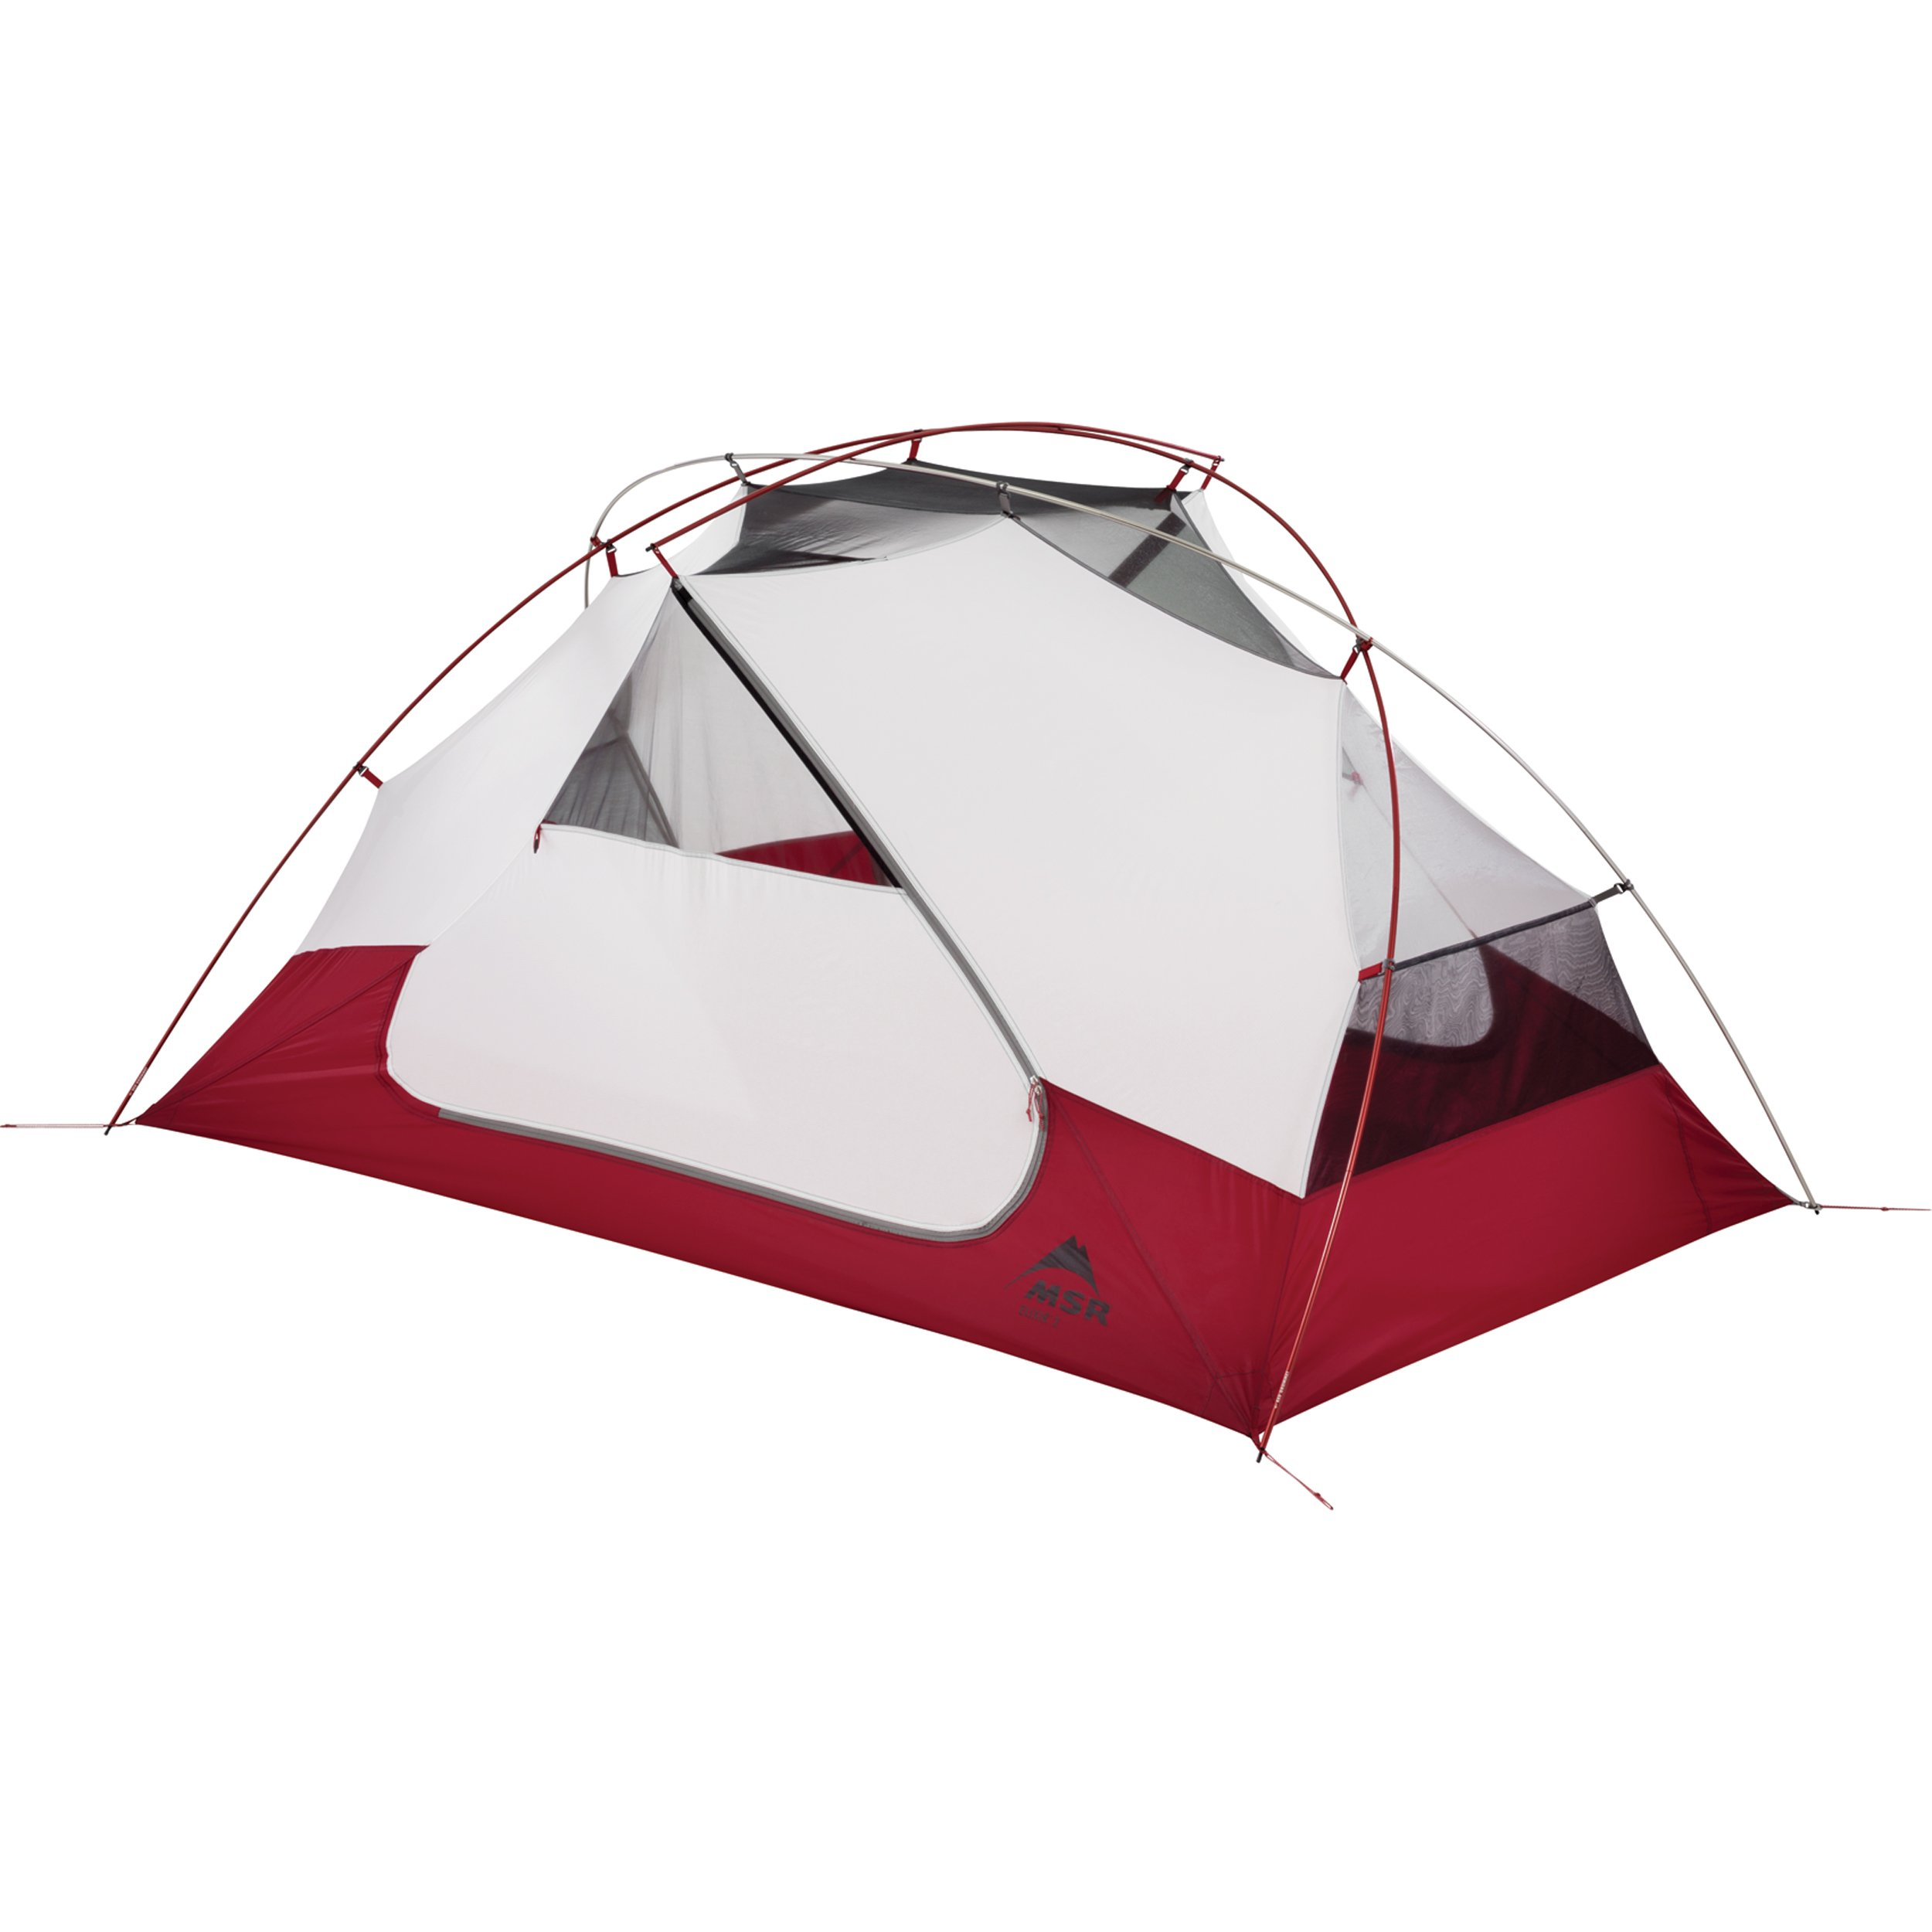 MSR Elixir 2-Person Lightweight Backpacking Tent